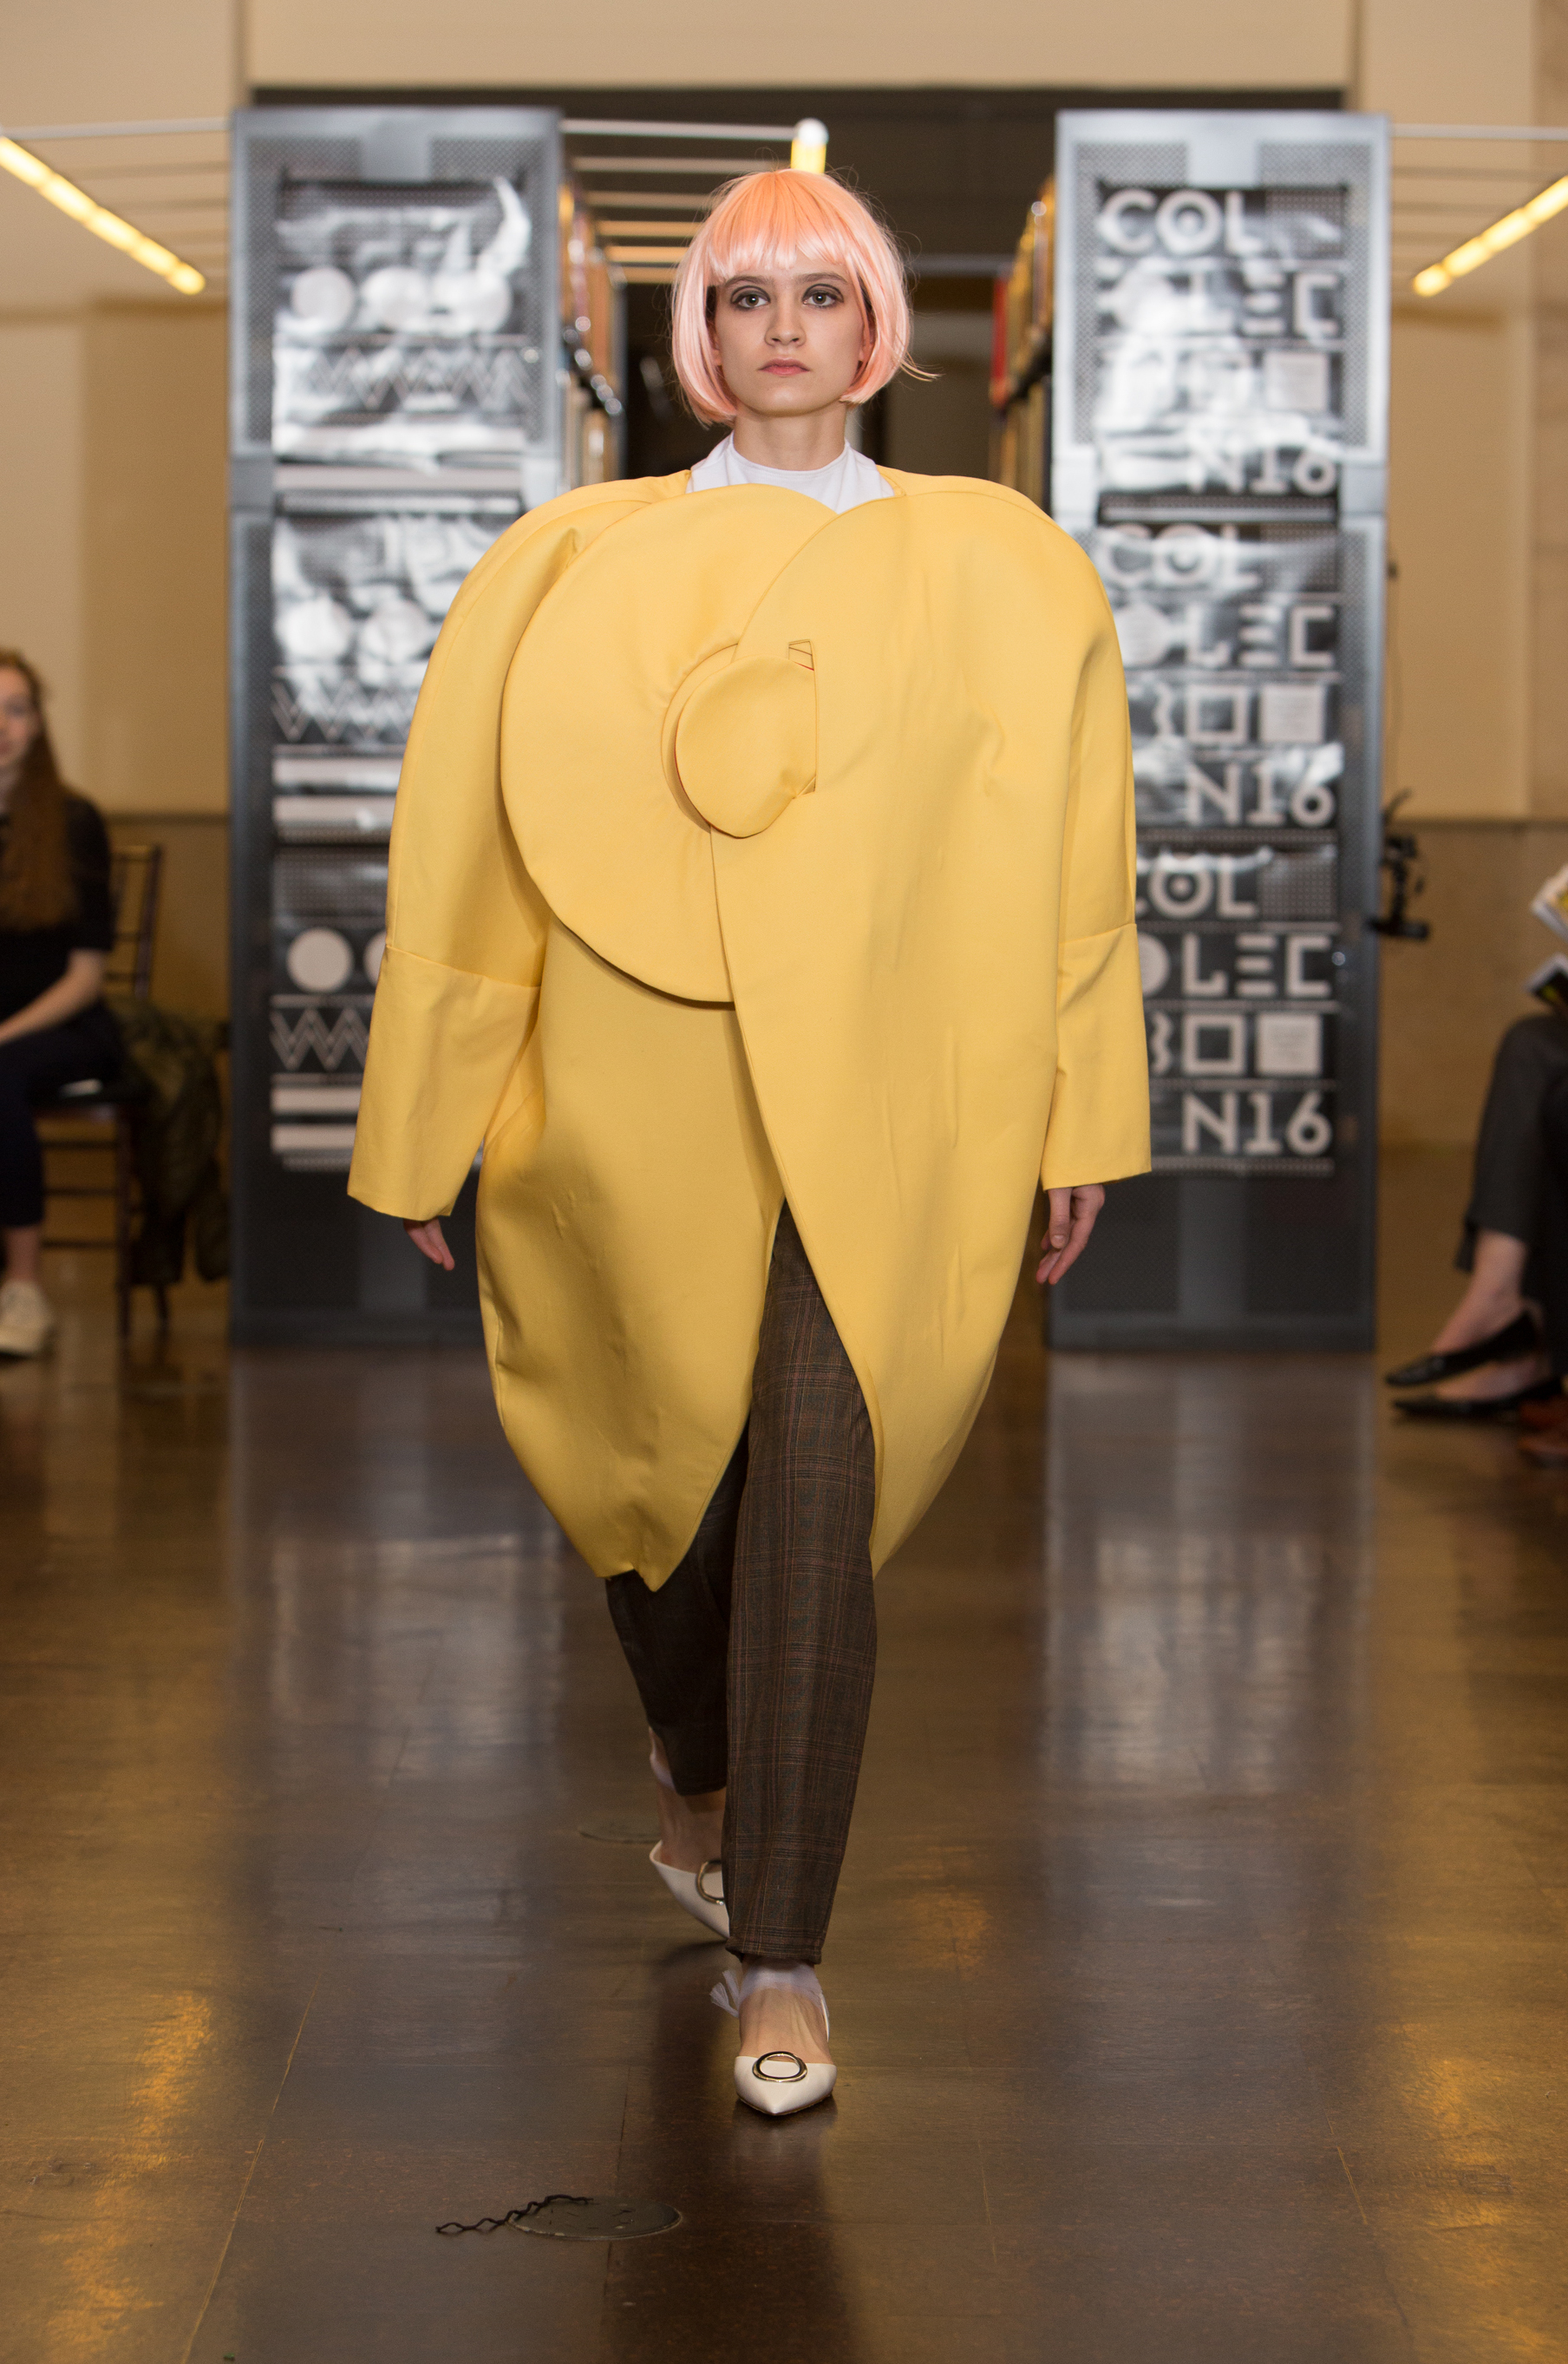 A look by Sasha Gregg, at the Rhode Island School of Design's 2016 Collection show.